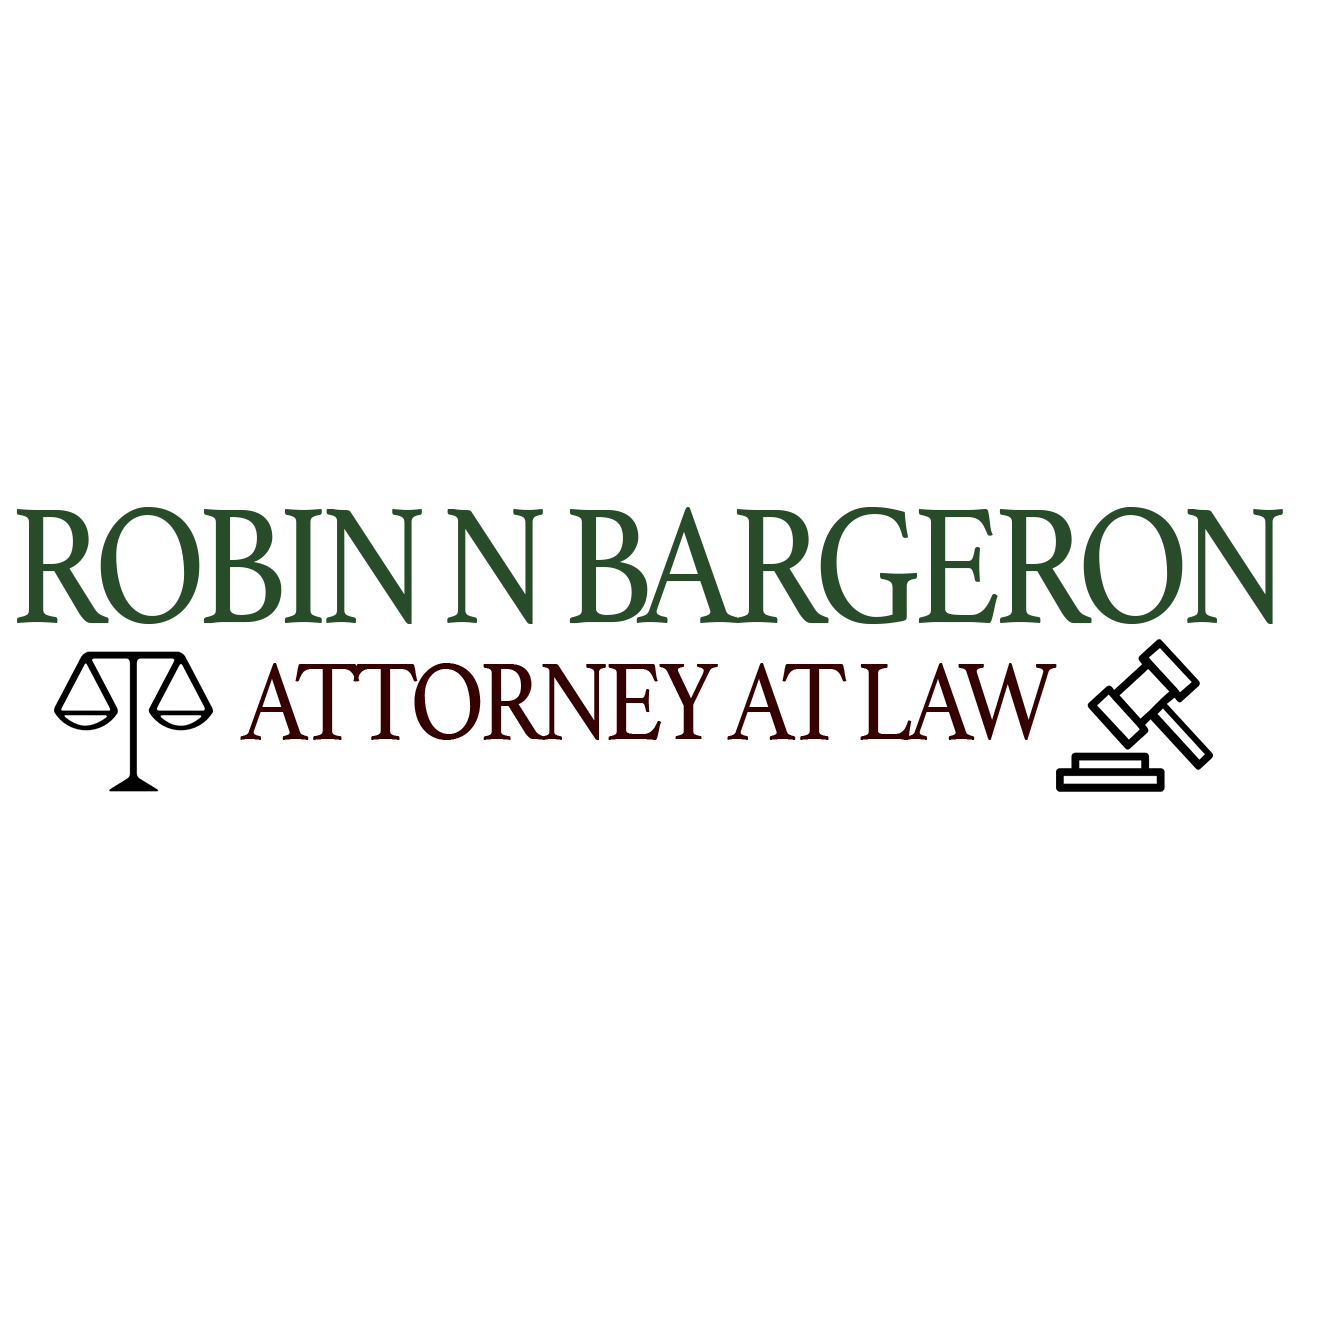 Robin N. Bargeron, Attorney at Law